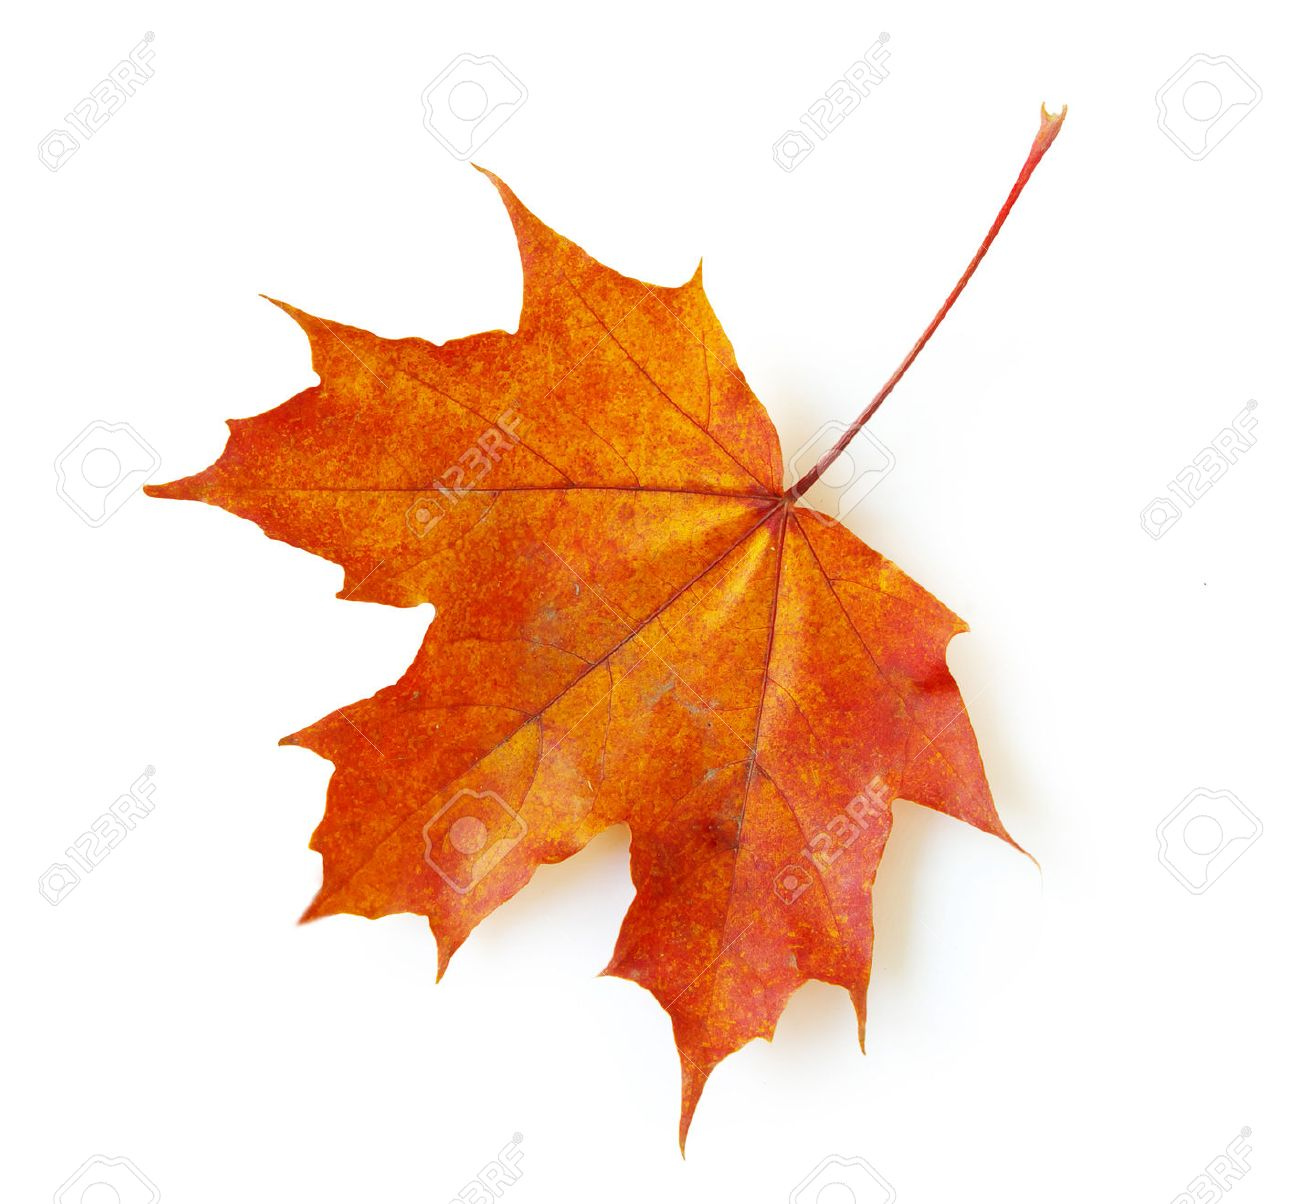 Autumn Maple Leaf Isolated On White Background Stock Photo Picture And Royalty Free Image Image 31831996